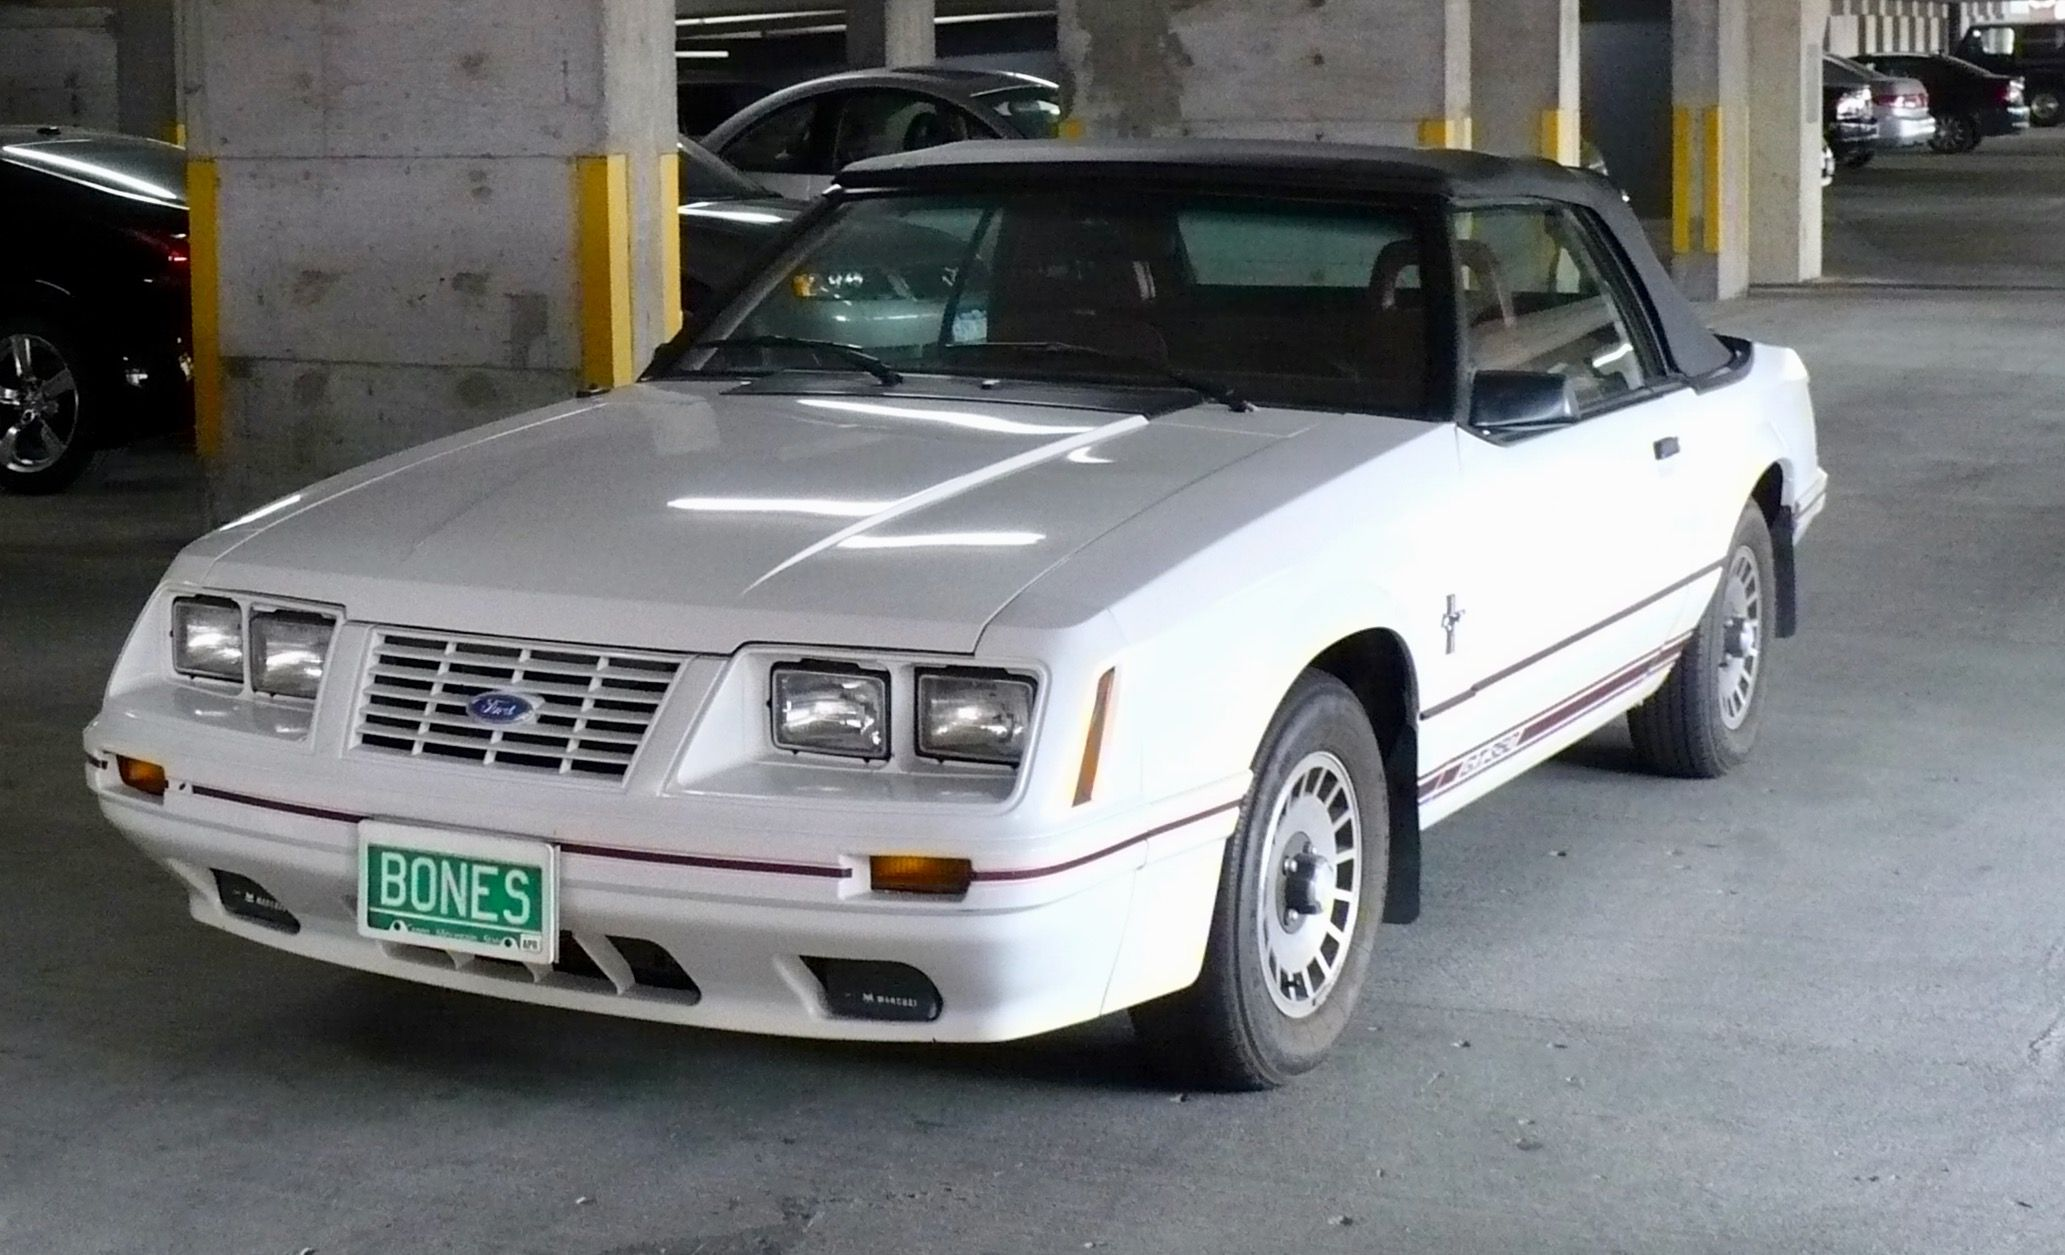 Picture of 1984 ford mustang gt350 exterior - 1984 Ford Mustang Gt 350 Https Mustangtraderonline Com Listing_type